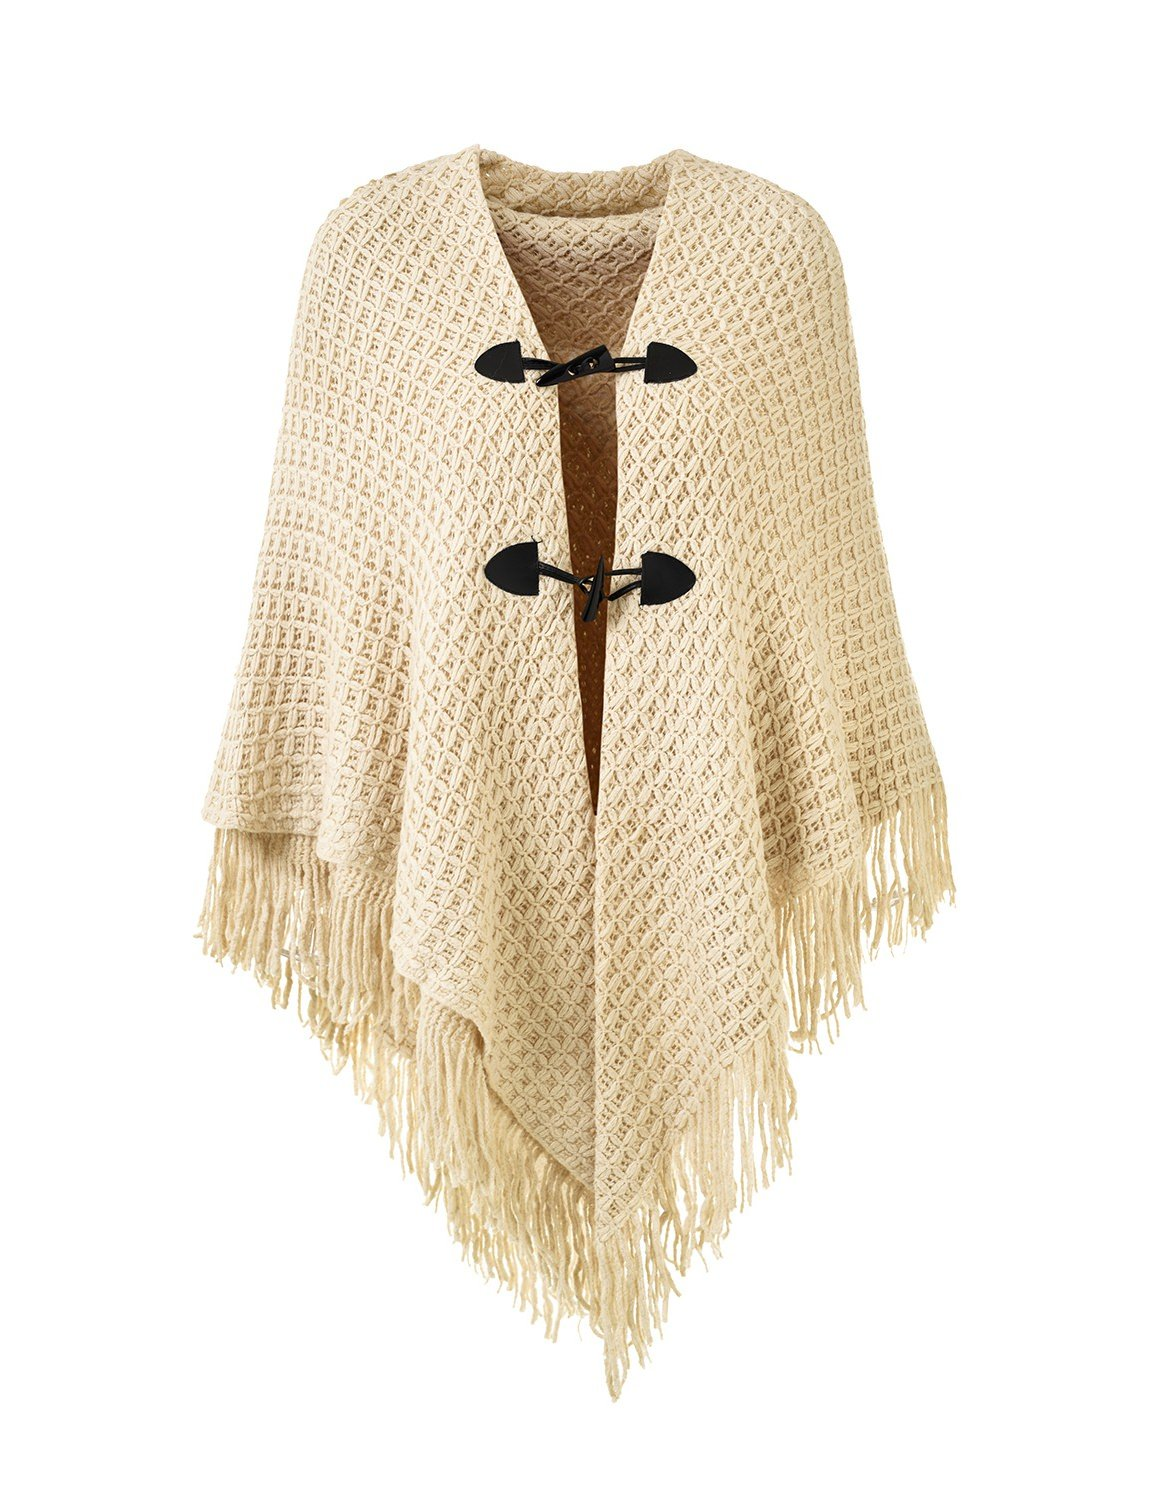 Ferand Women's Loose Fitting Poncho Cape Shawl with Stylish Horn Buttons, V Neckline and V Hem, Beige (Larger & Thicker Style)